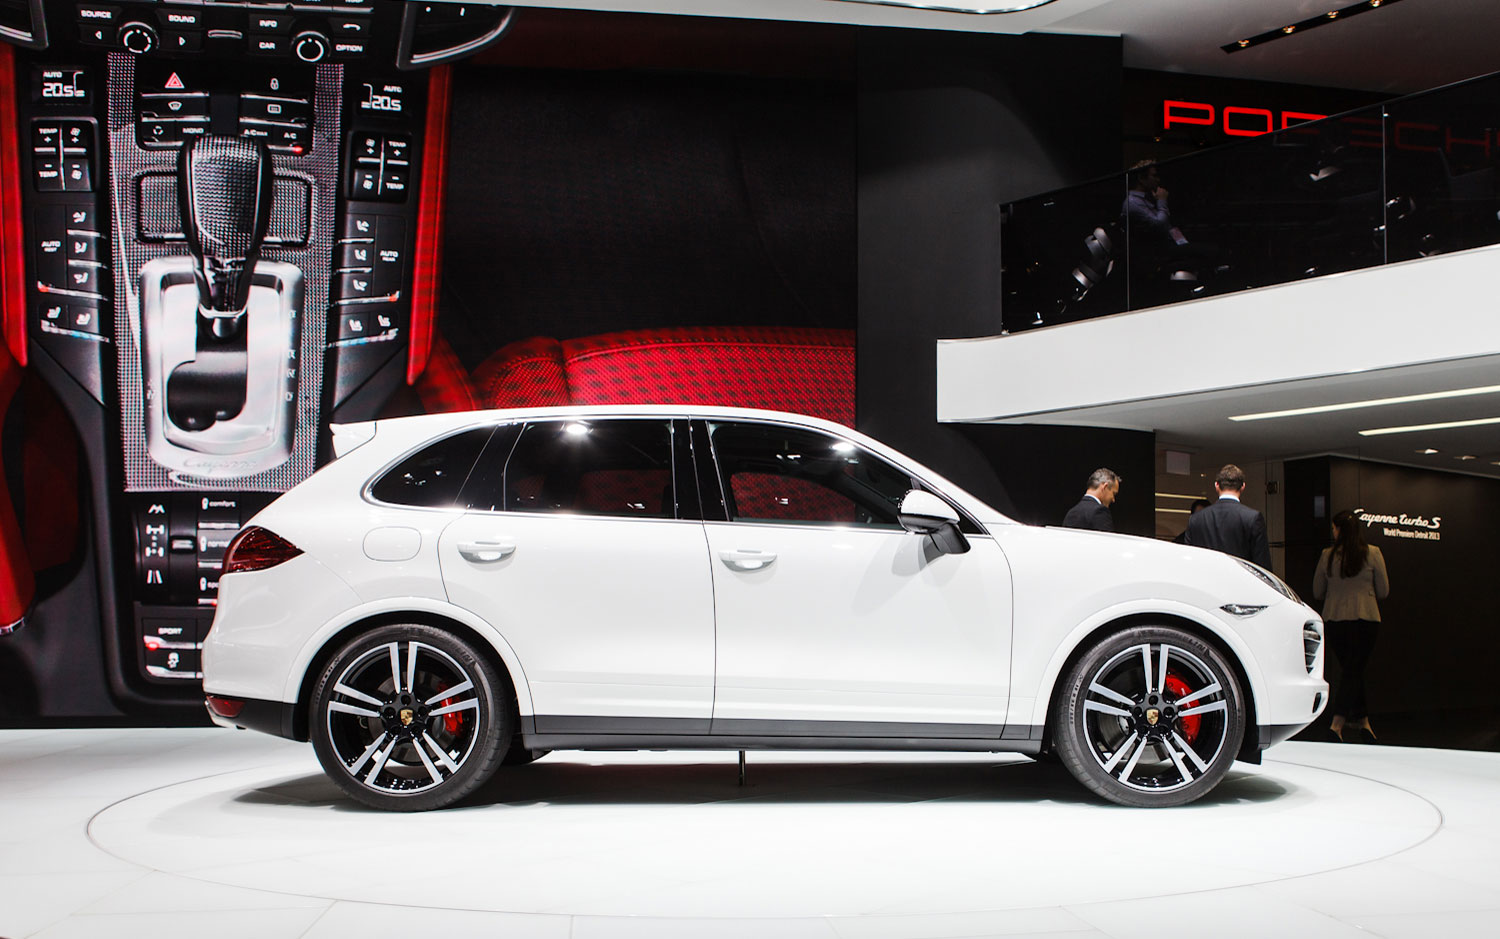 cars model 2013 2014 146 975 porsche cayenne turbo s debuts in detroit cayenne is top porsche. Black Bedroom Furniture Sets. Home Design Ideas